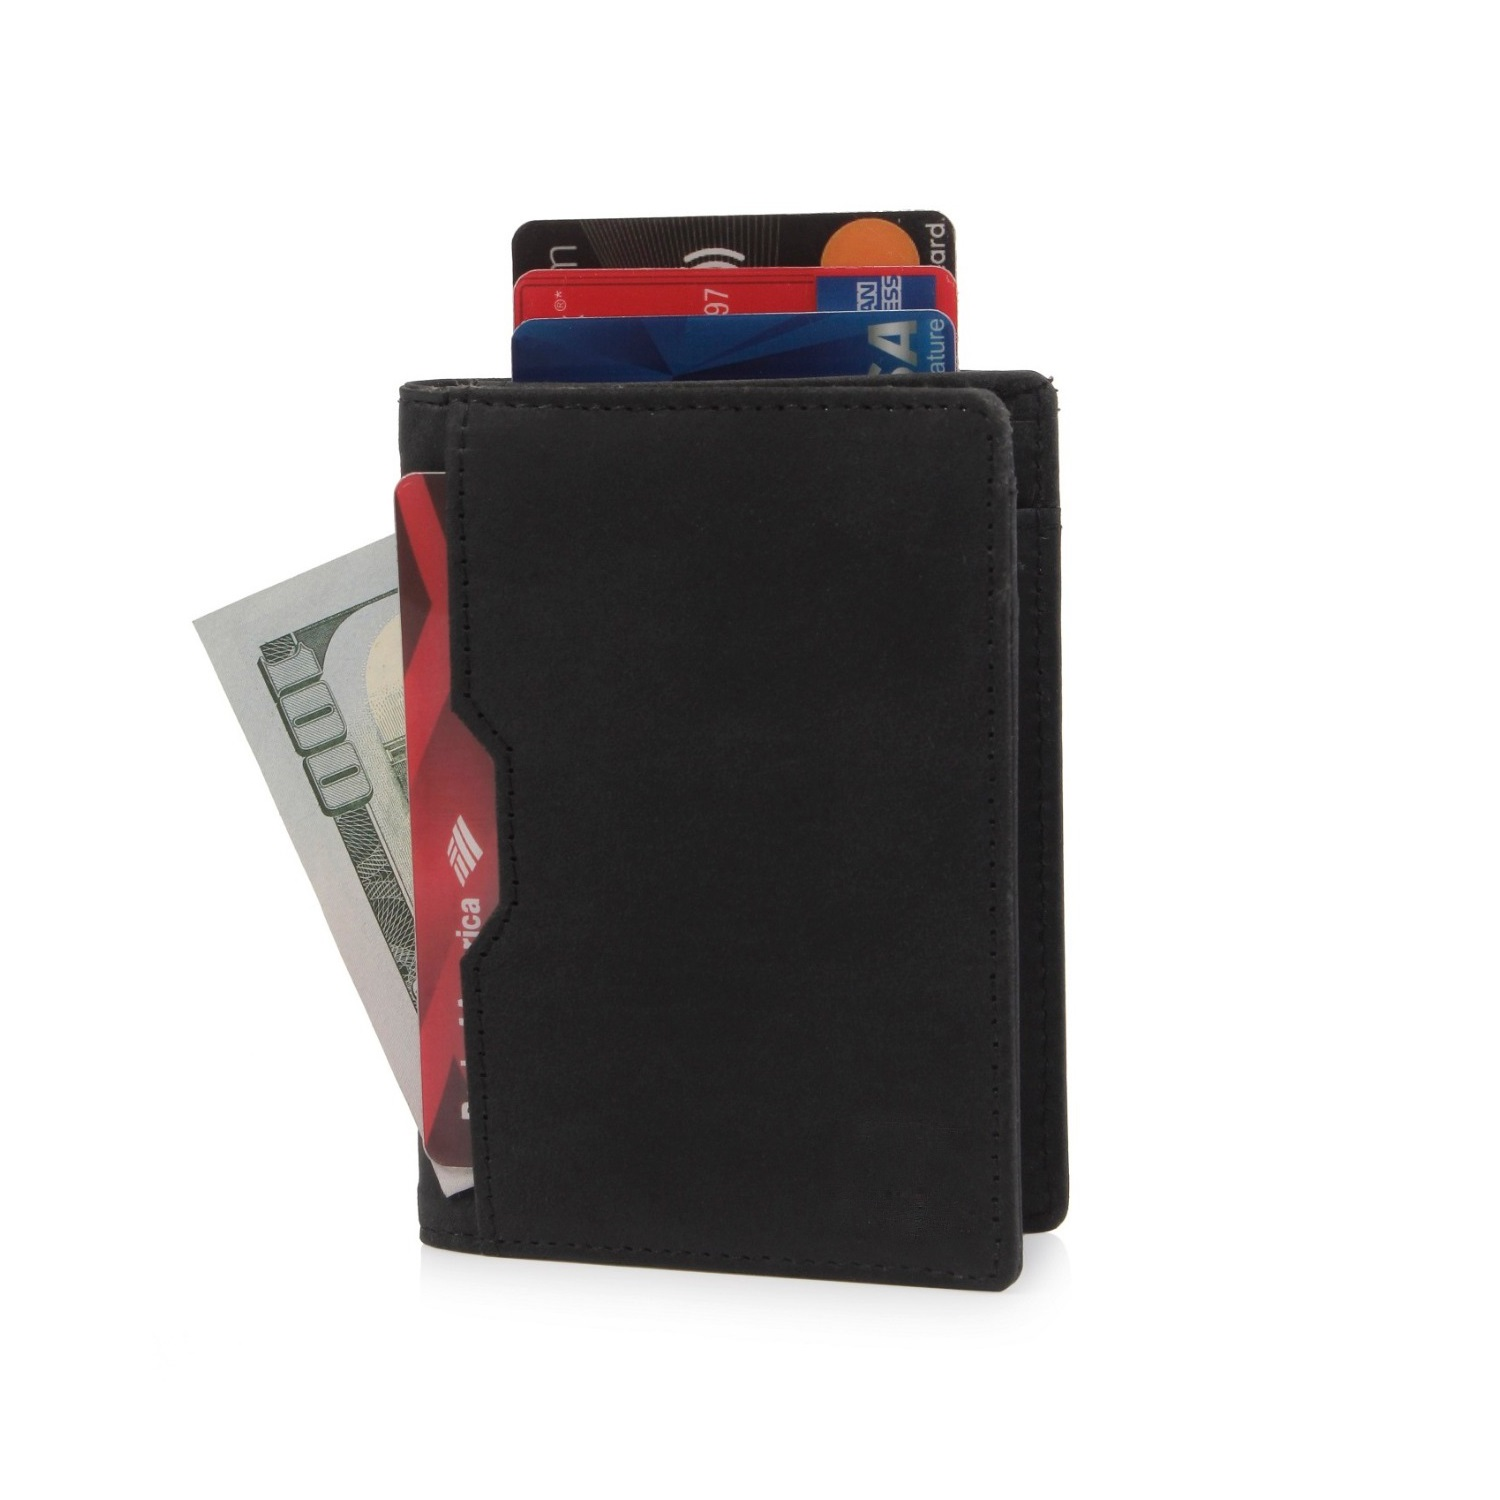 Leather Wallets Manufacturers in Romania, Leather Wallets Suppliers in Romania, Leather Wallets Wholesalers in Romania, Leather Wallets Traders in Romania